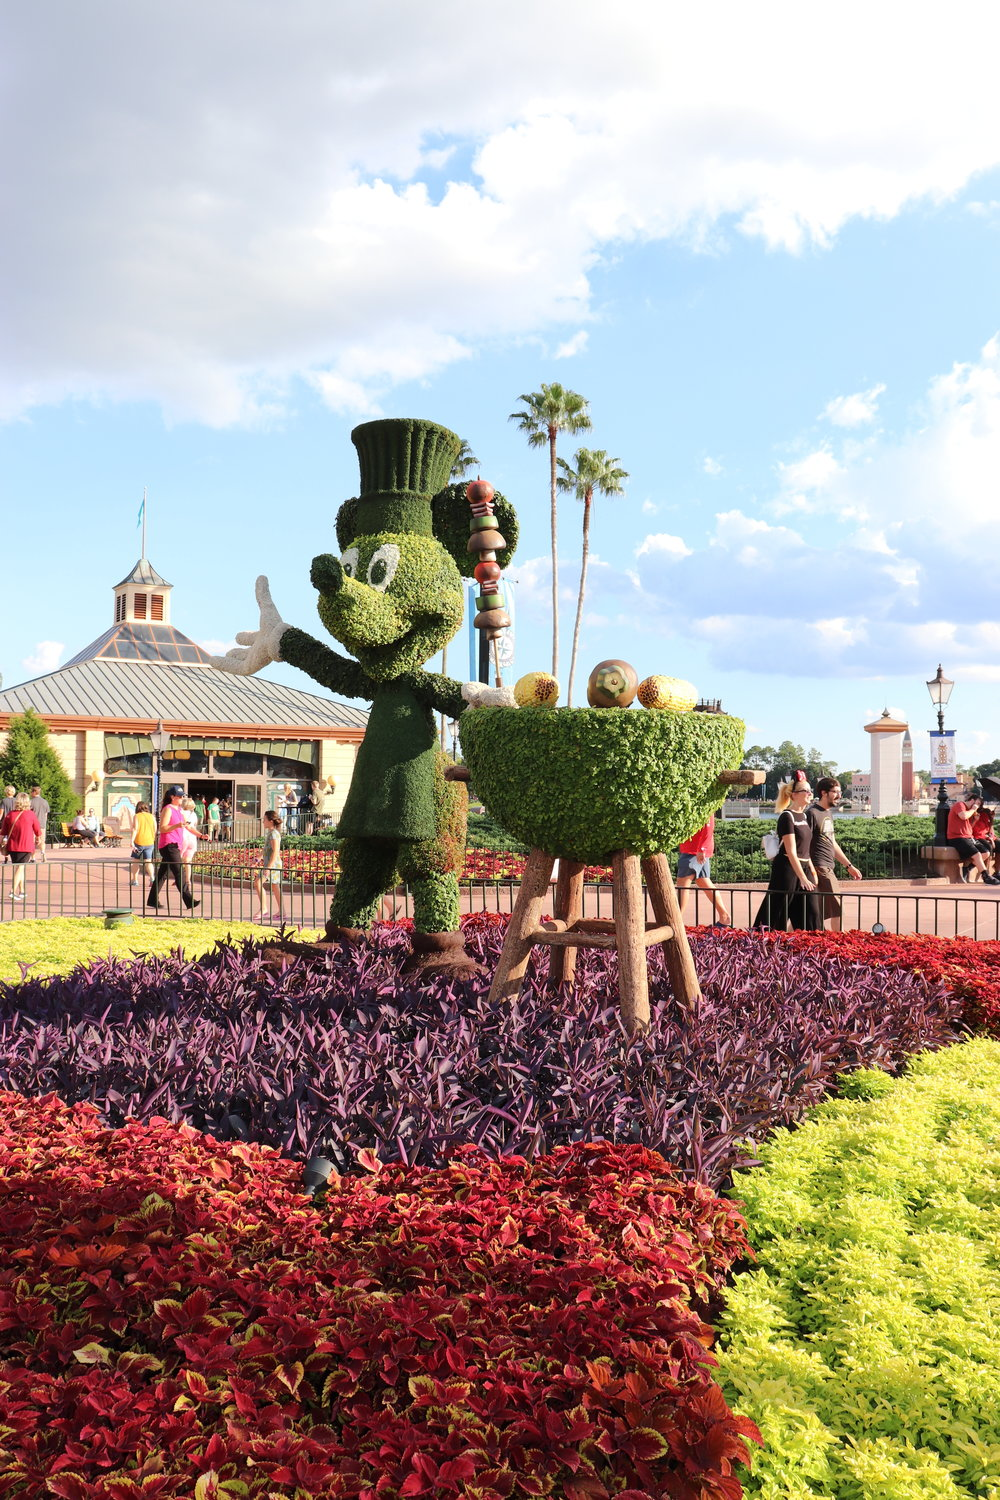 We love when Epcot has special topiary designs.